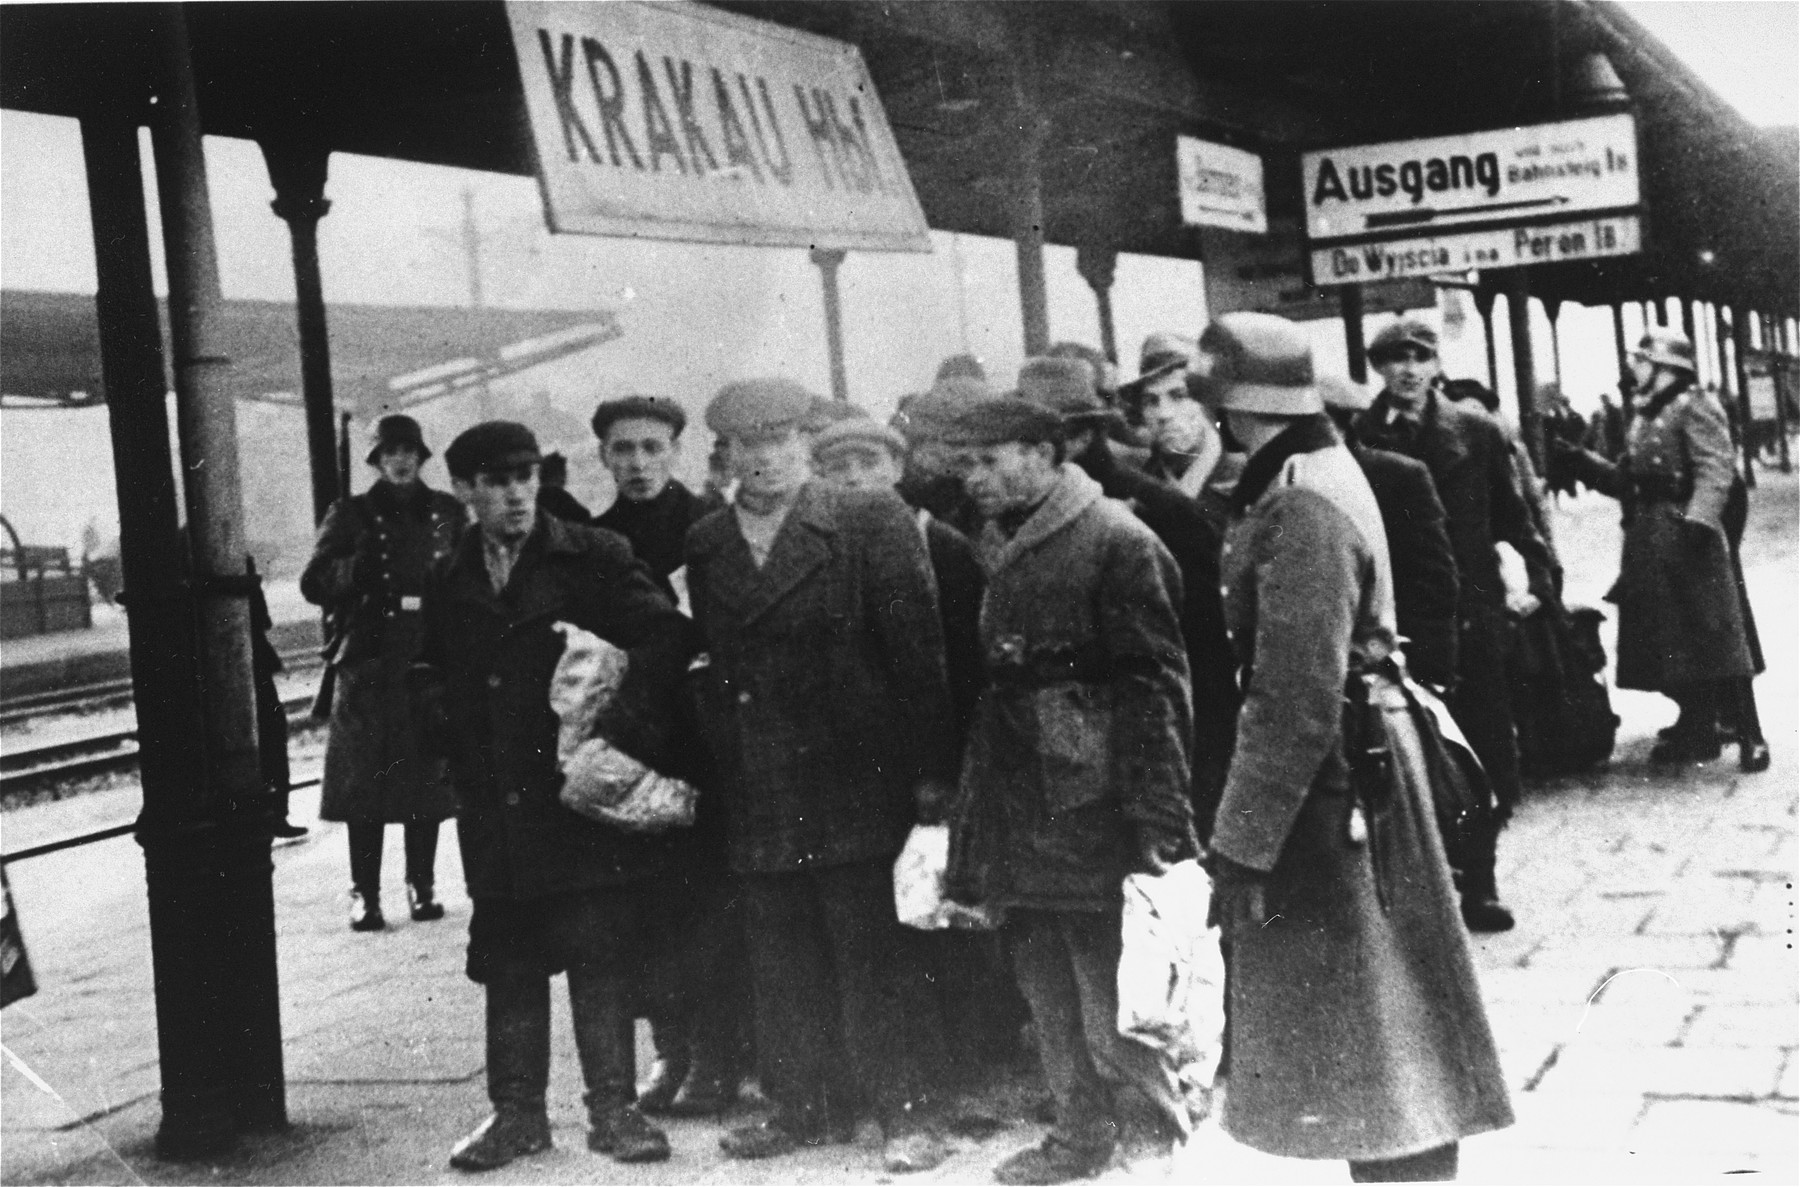 Jews assembled for deportation wait on the platform in the railway station for further transport.